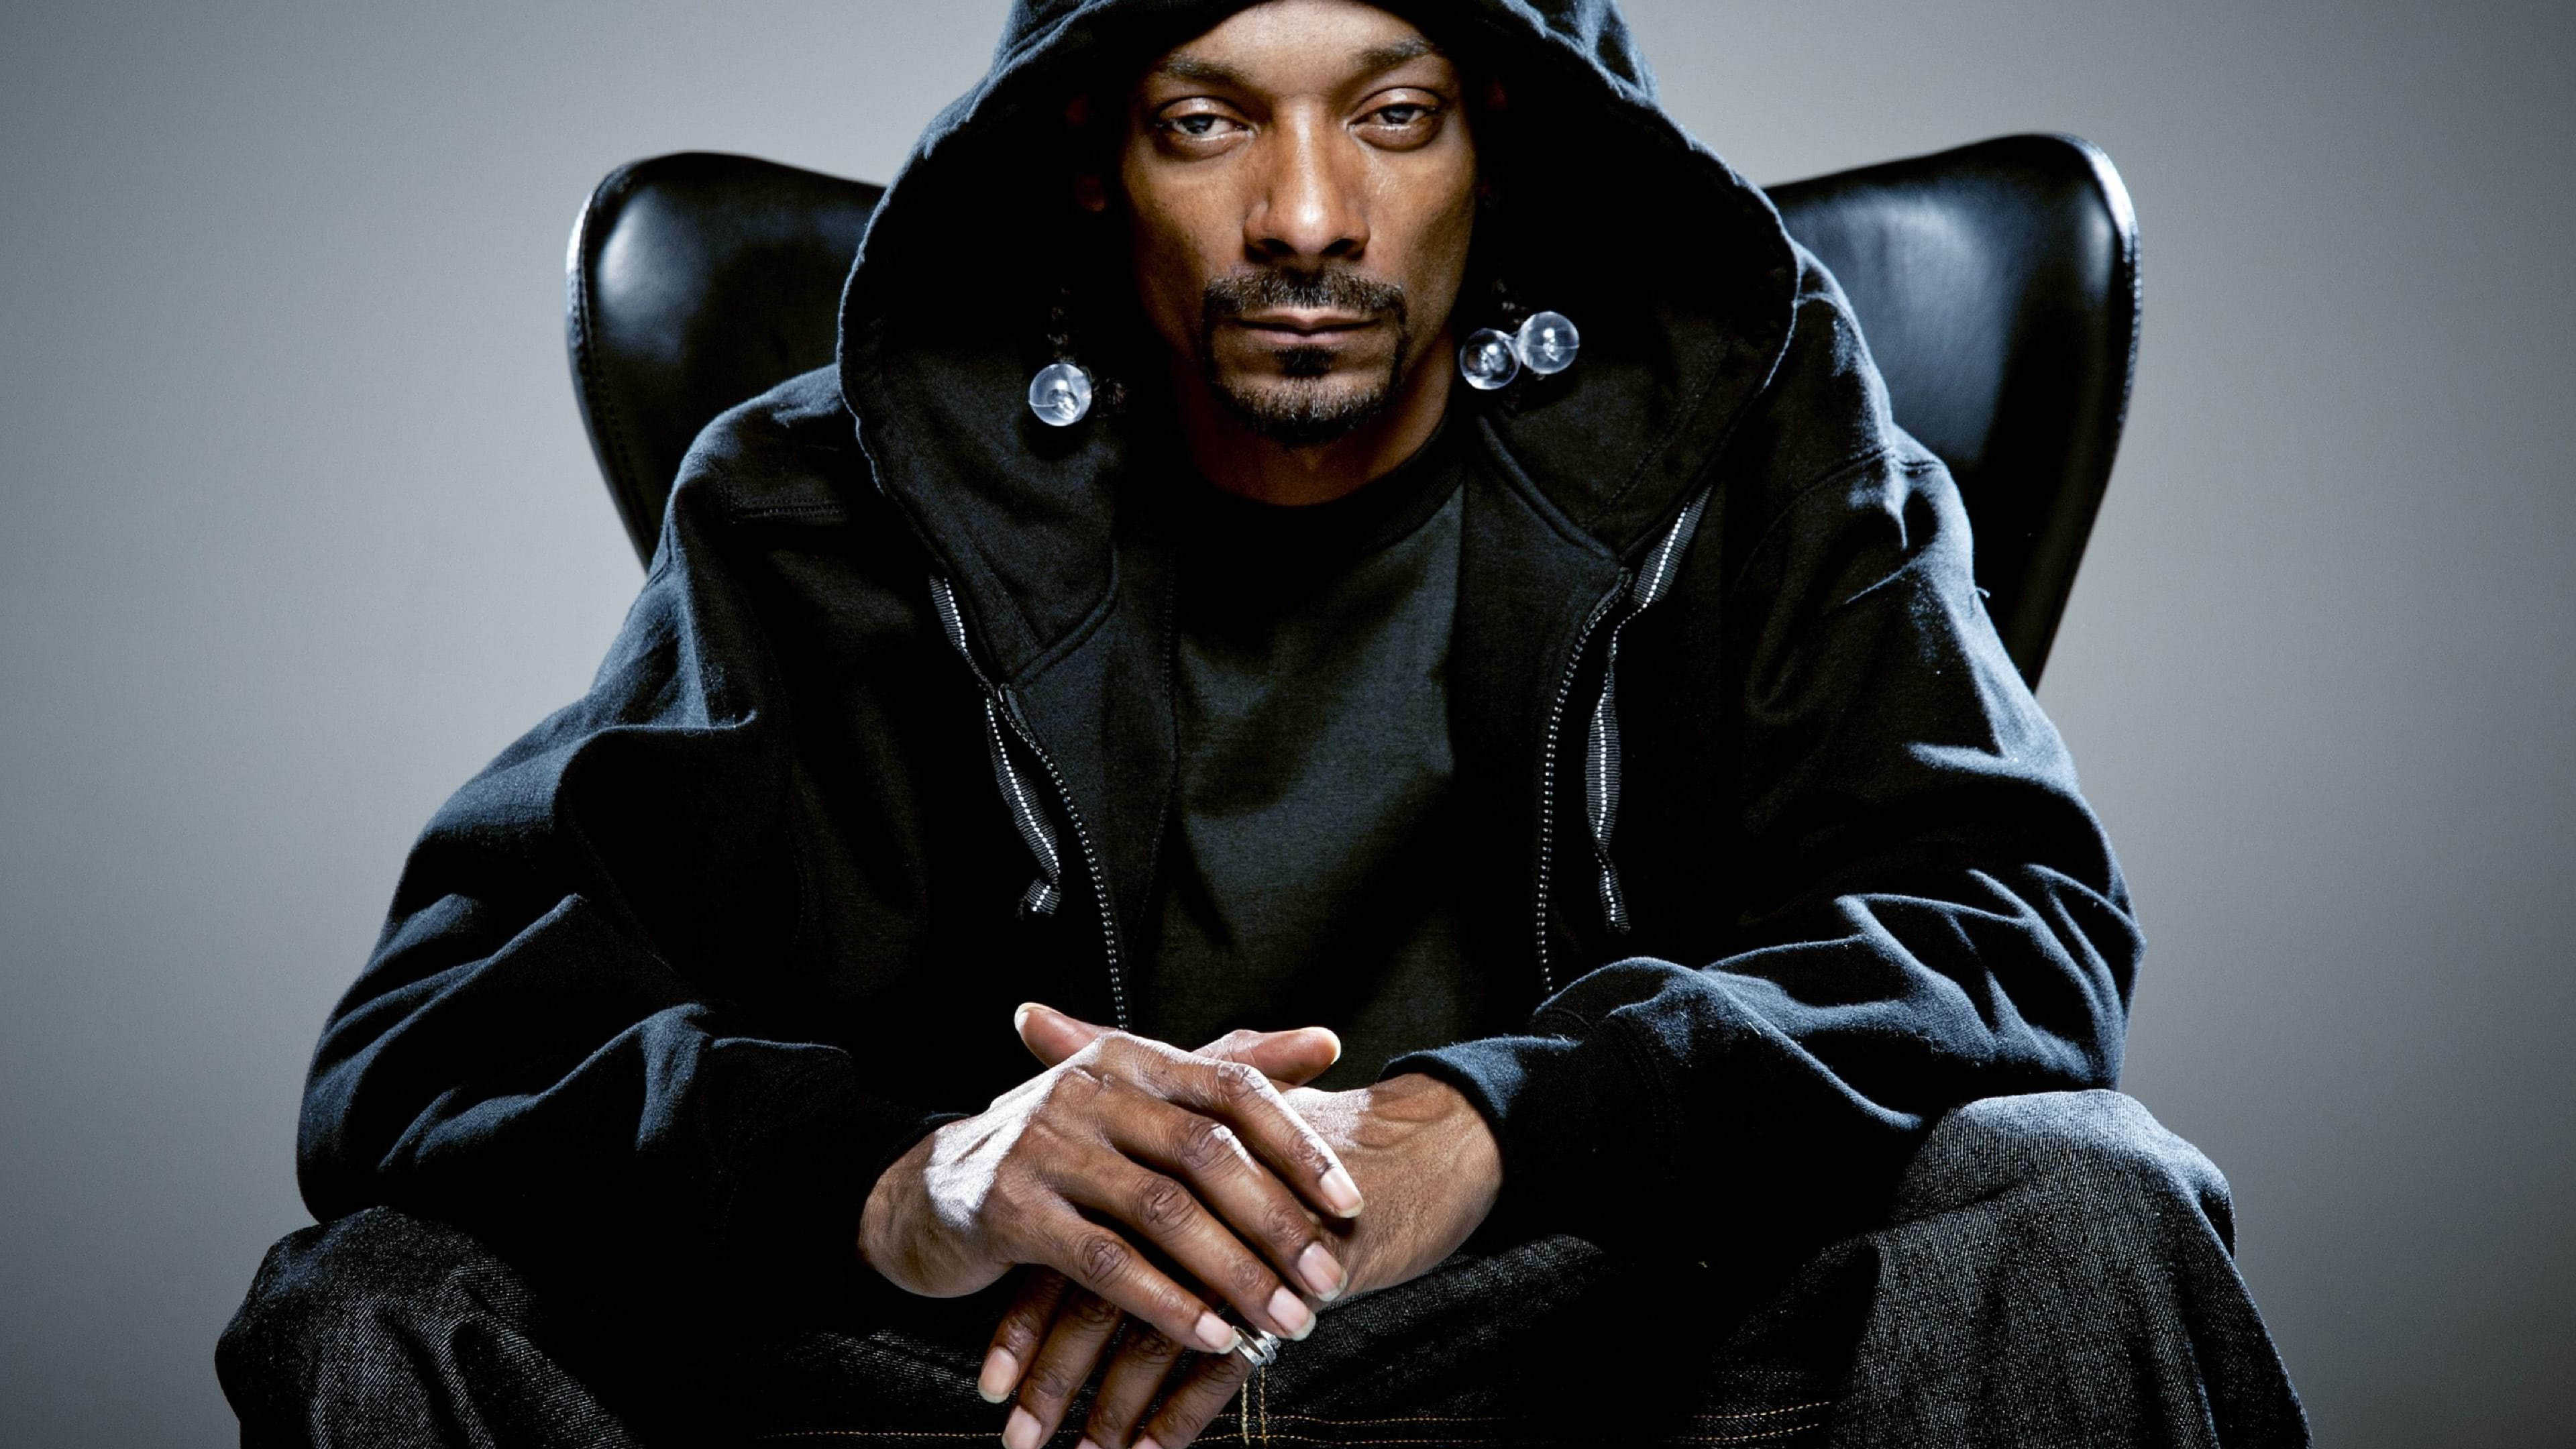 snoop dogg uhd 4k wallpaper